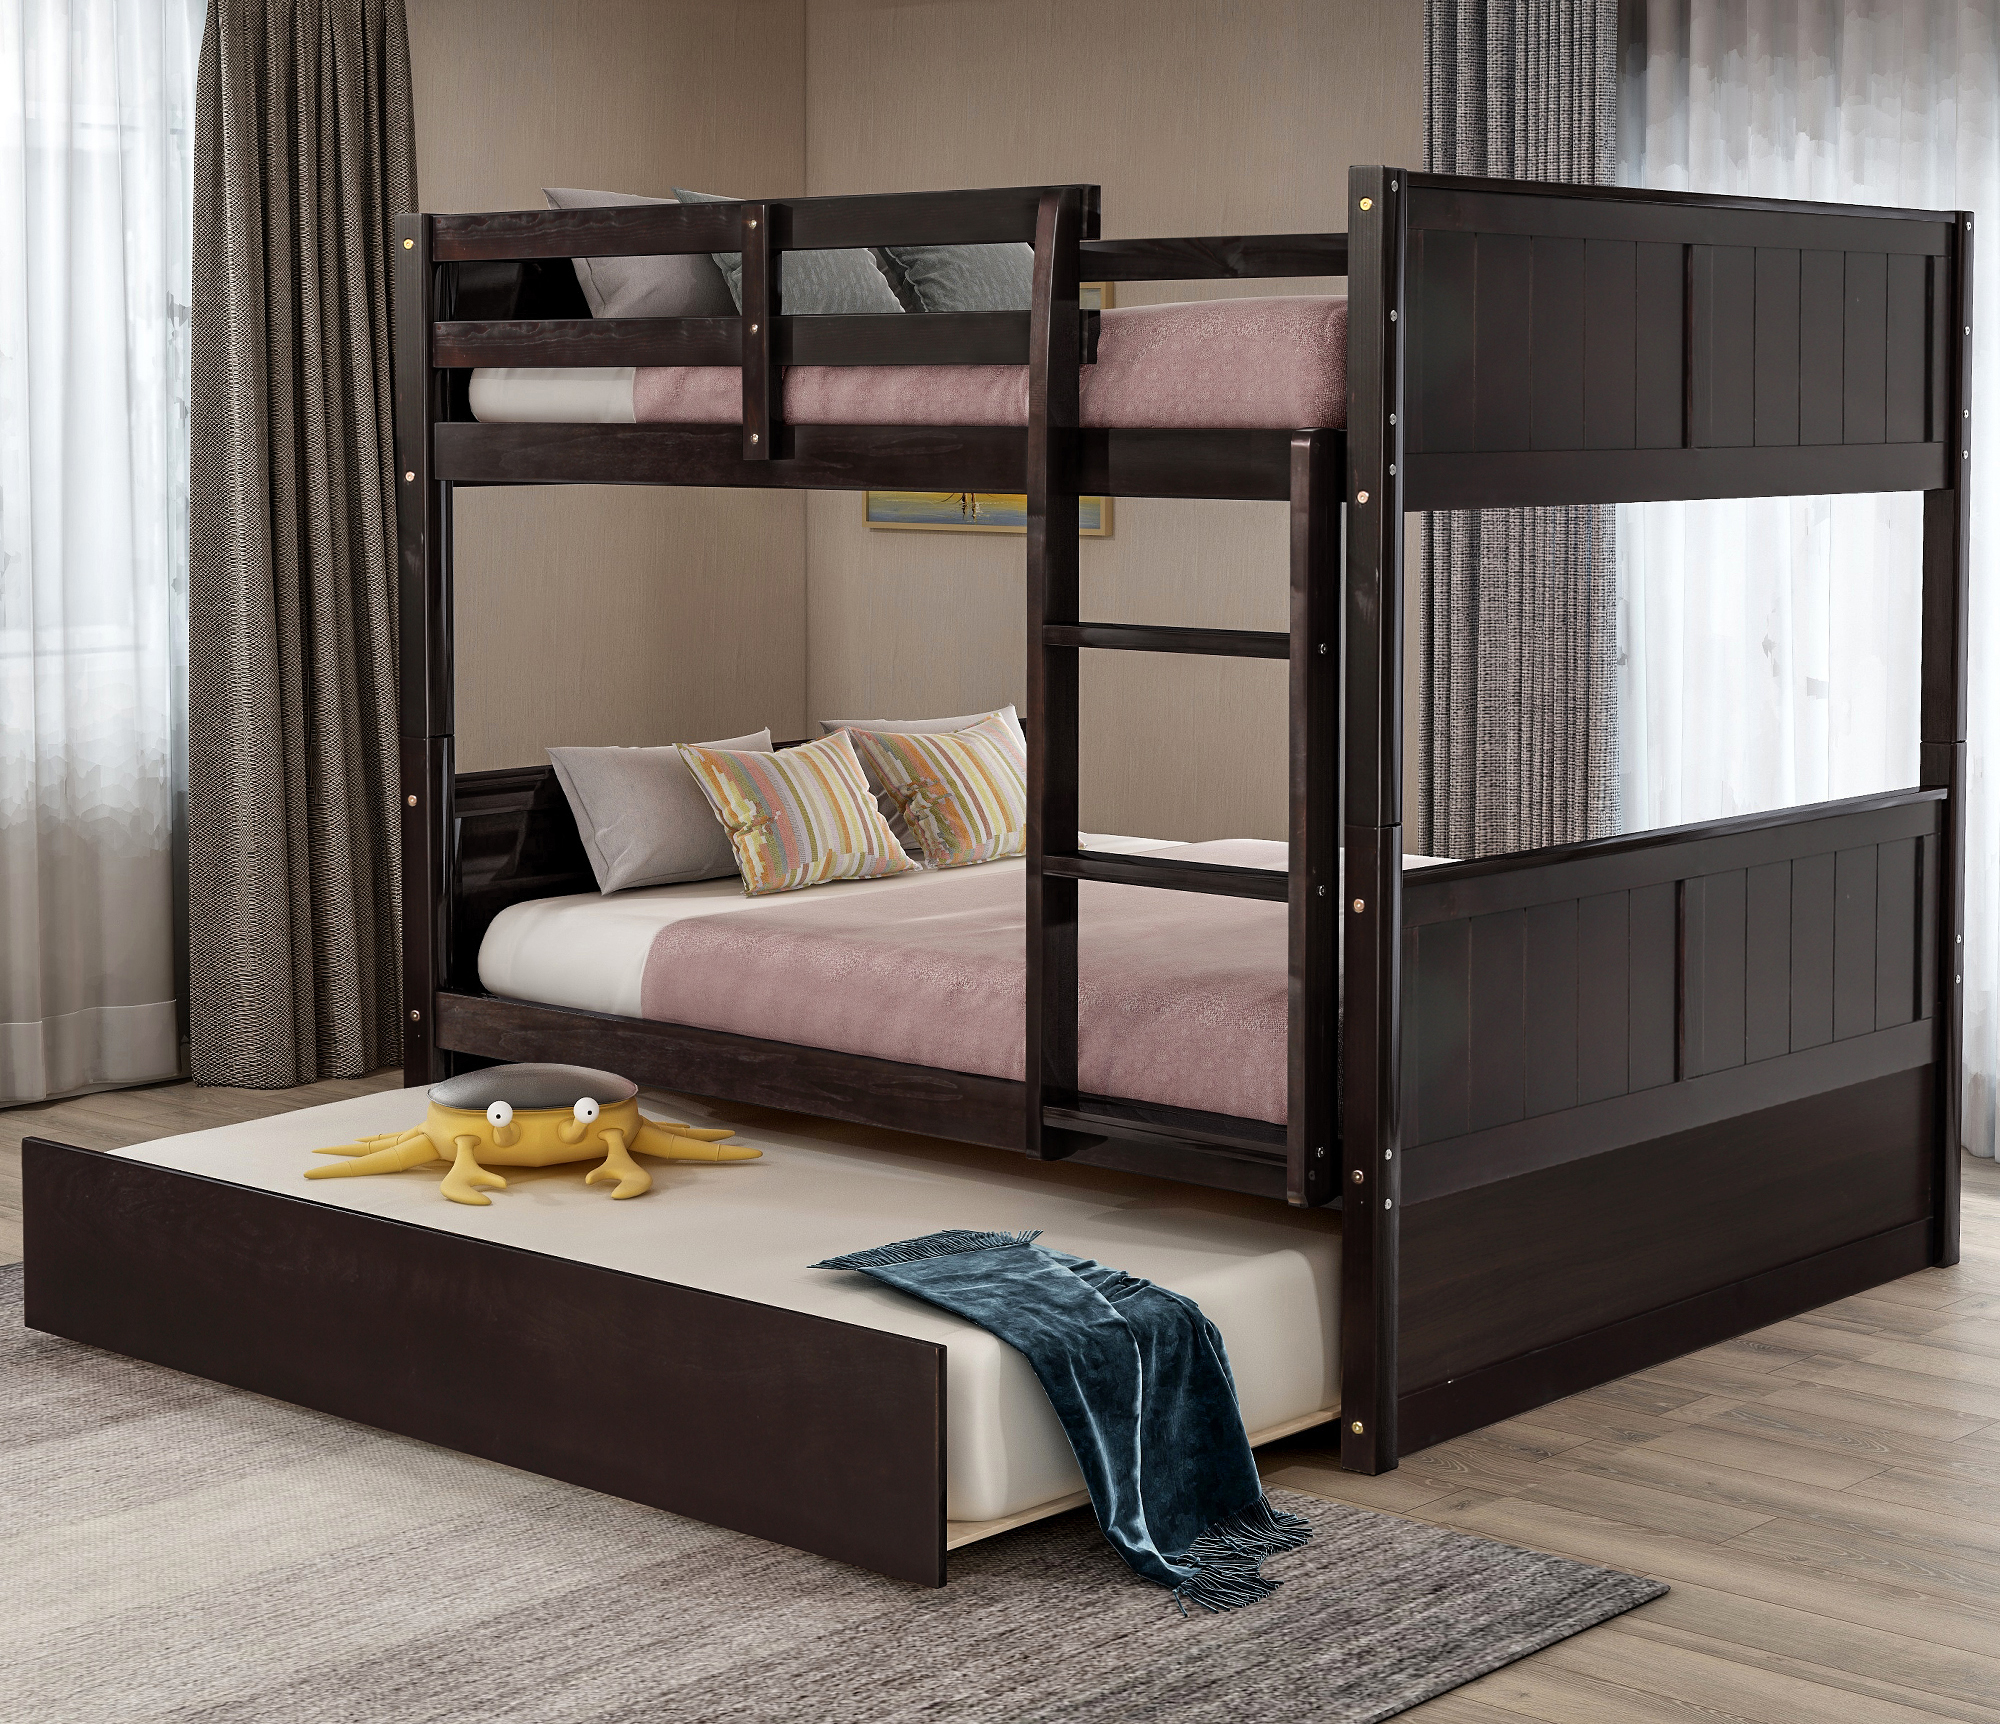 Picture of: Full Over Full Bunk Bed With Twin Size Trundle Solid Wood Bunk Beds Full Over Full With Safety Rail Ladder Convertible To Two Full Size Platform Bed Bunk Bed For Kids Teens Adults Espresso